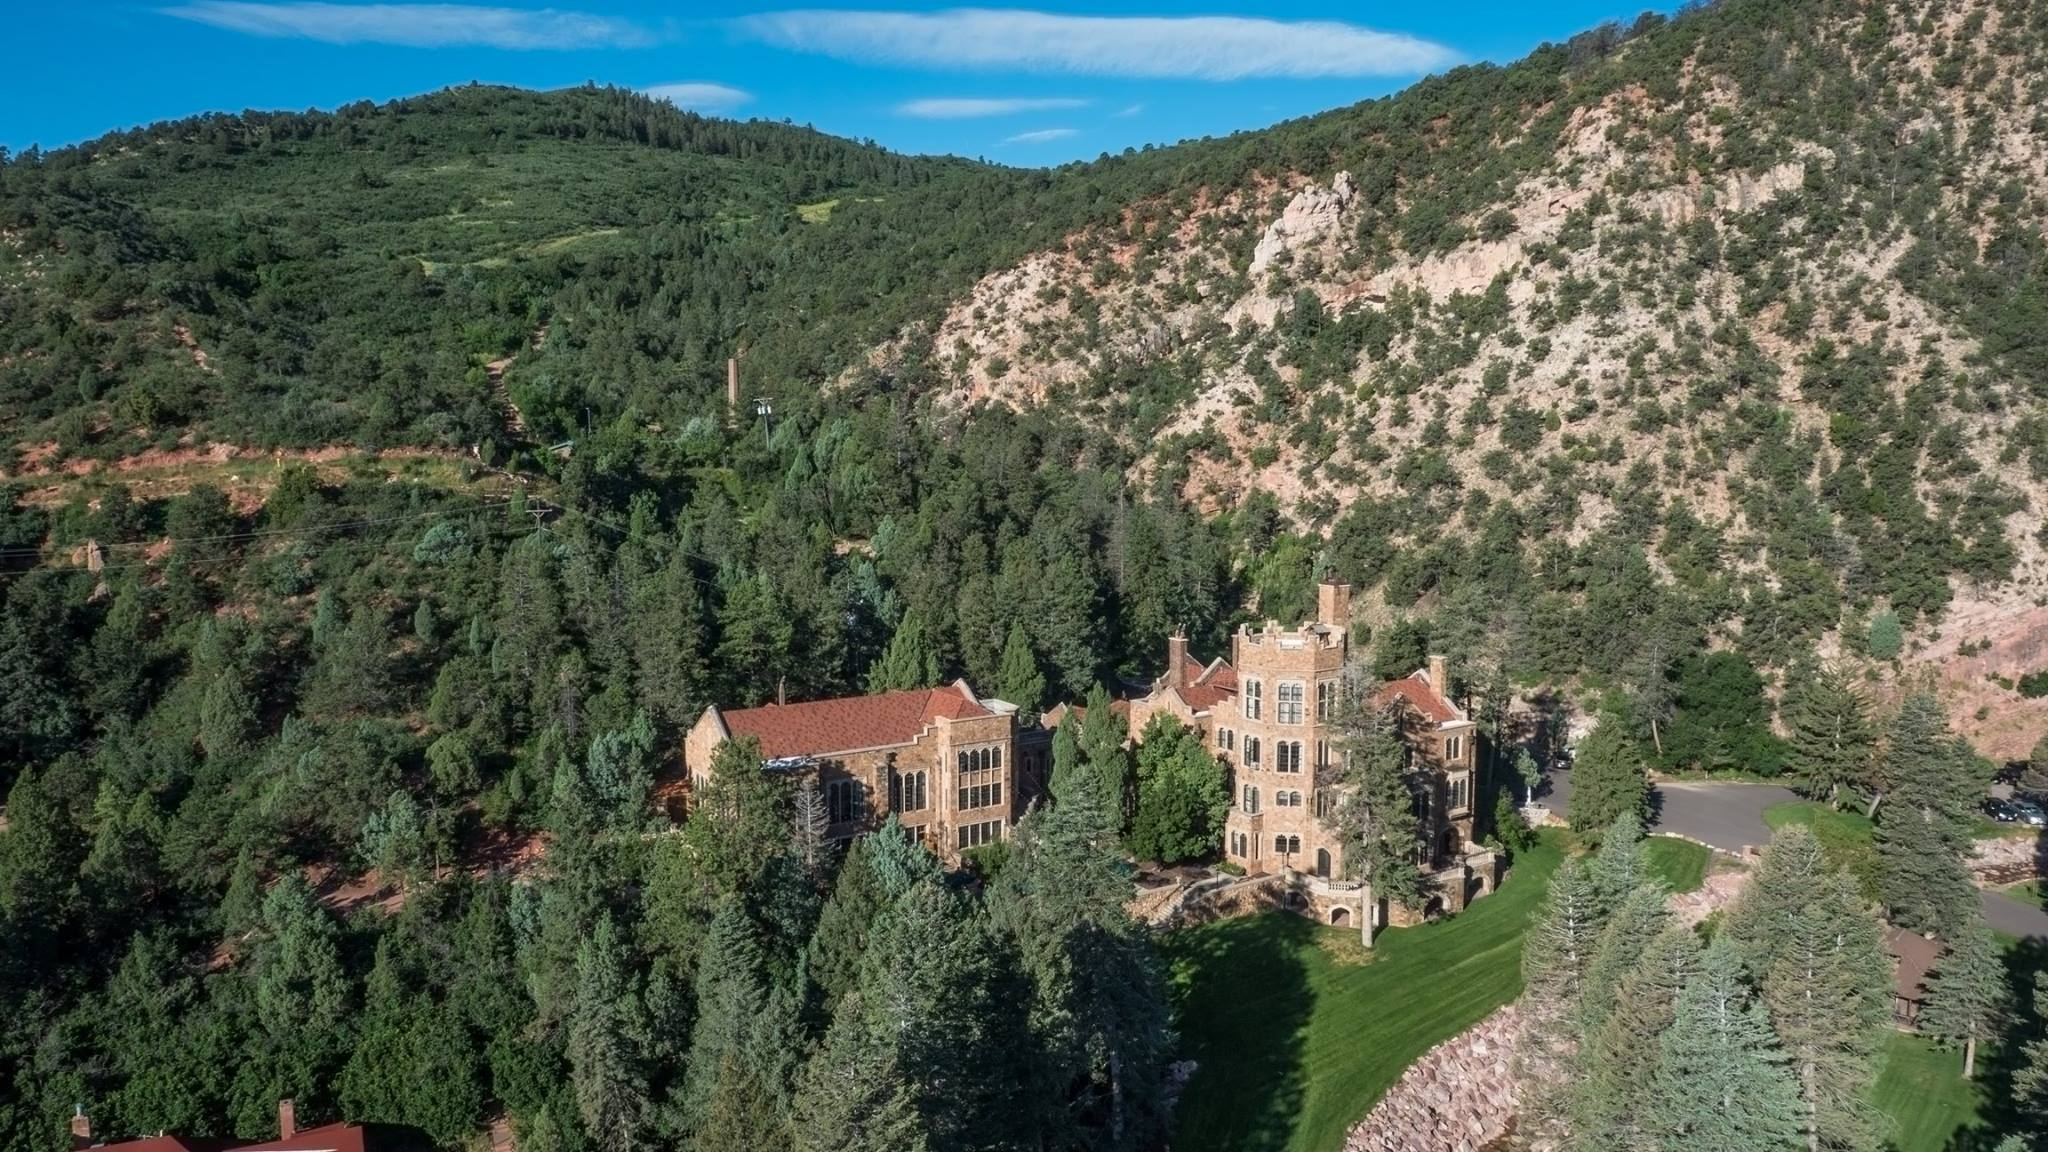 Ariel view of Glen Eyrie with the Garden of the Gods in view